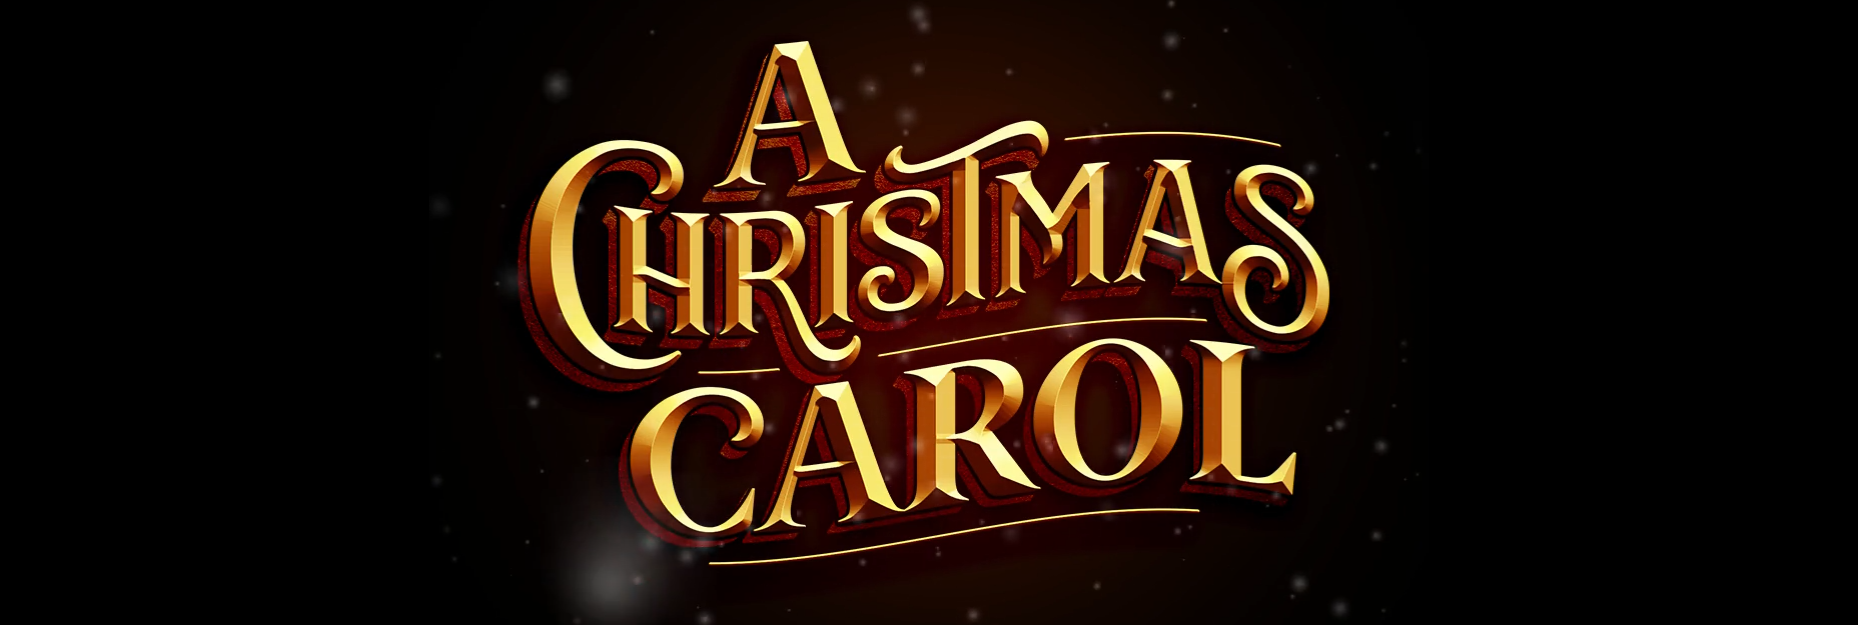 A Christmas Carol logo is written in gold cursive letters on a dark background.